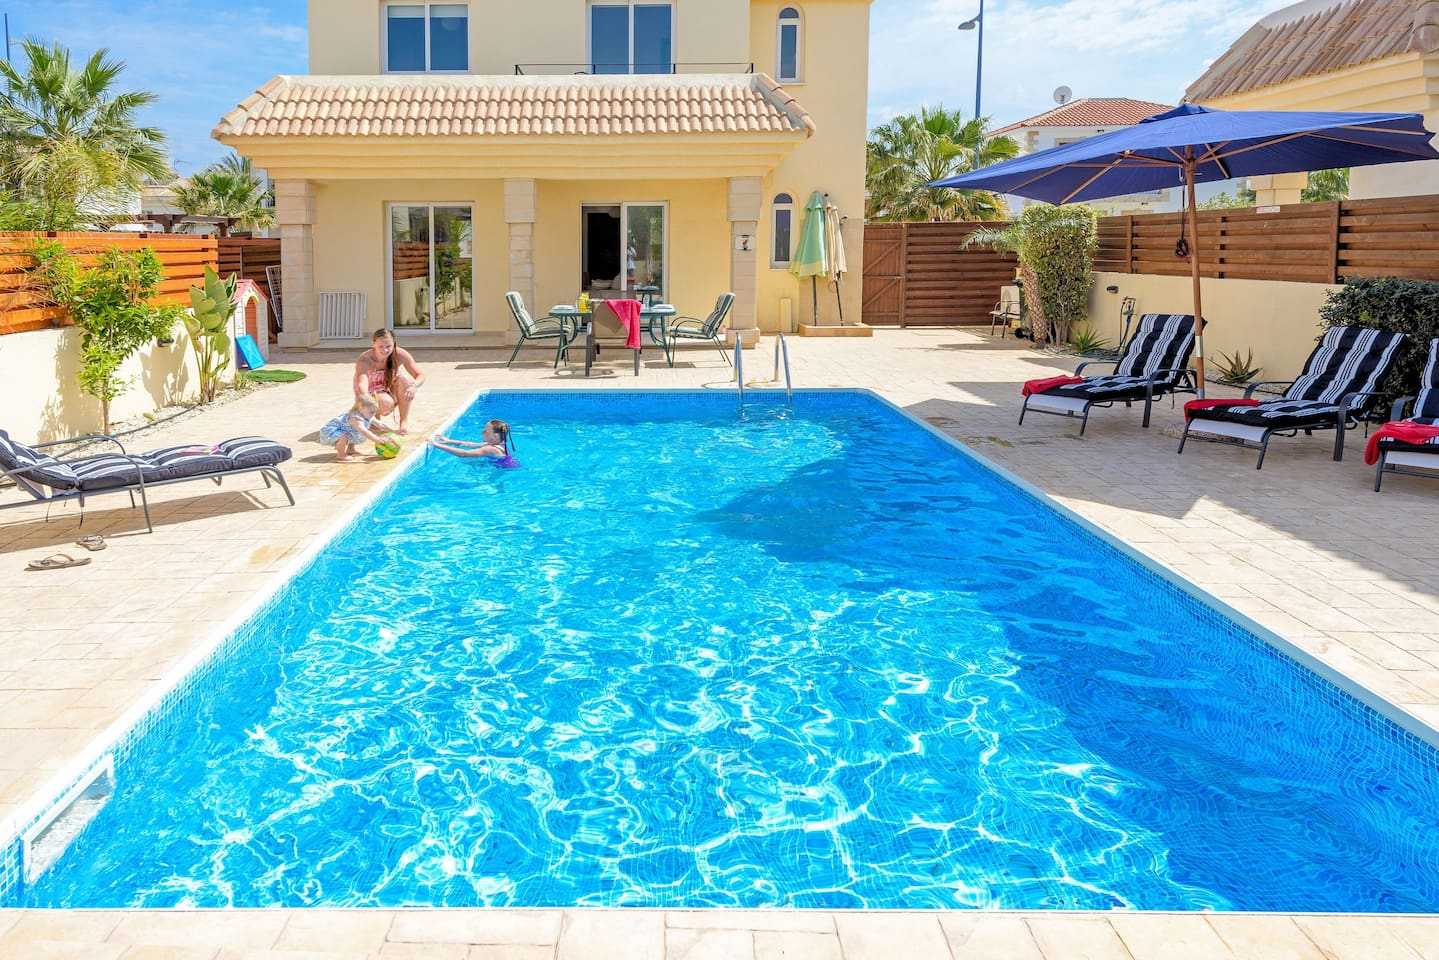 villas4kids - Villa Sophia - we can fence off a play area away from the pool